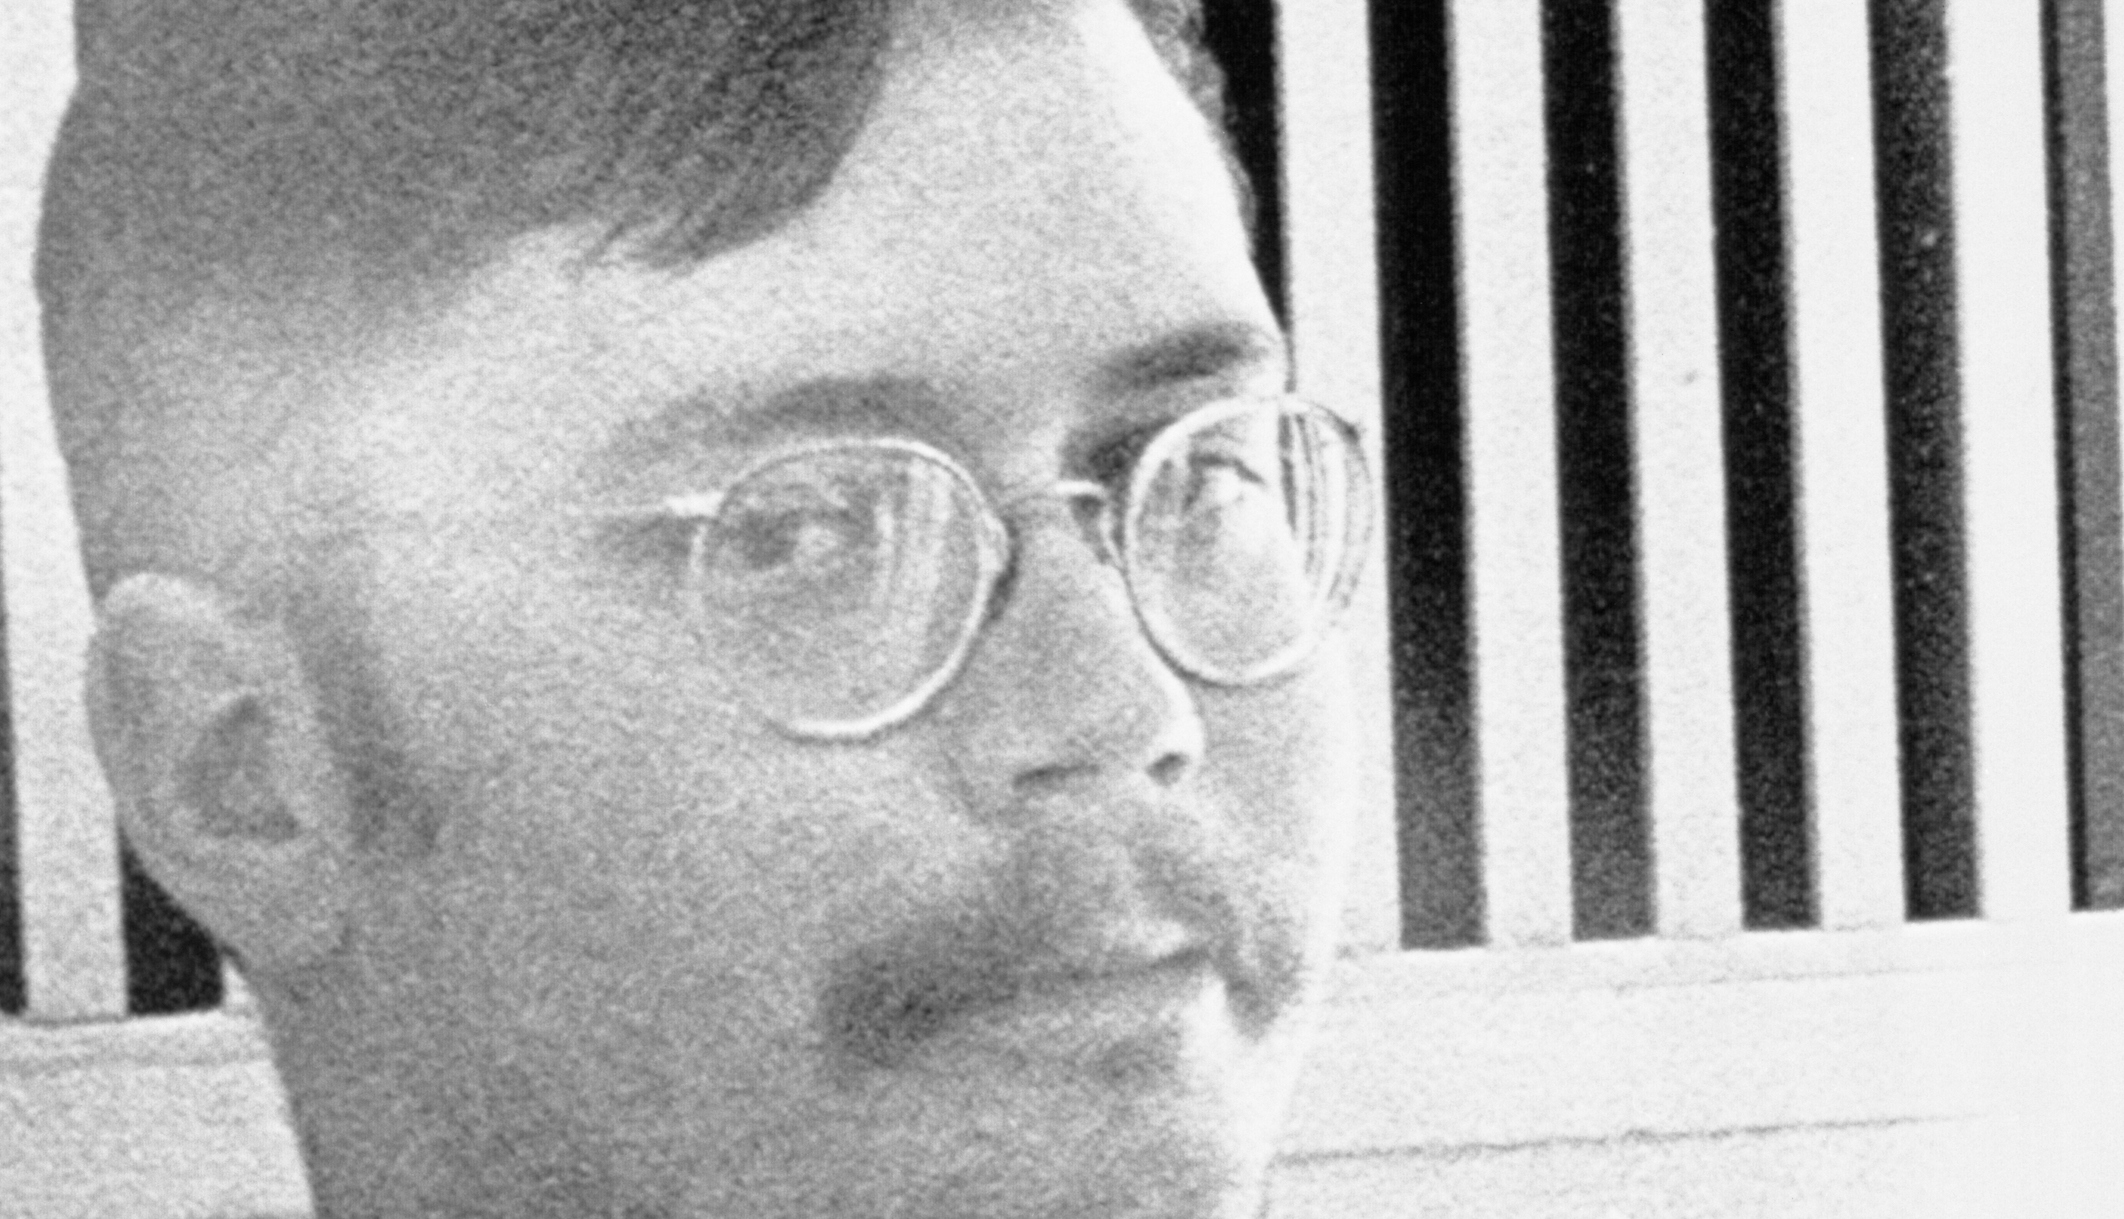 Ed Kemper, The Co-Ed Killer, Then And Now | Crime Time